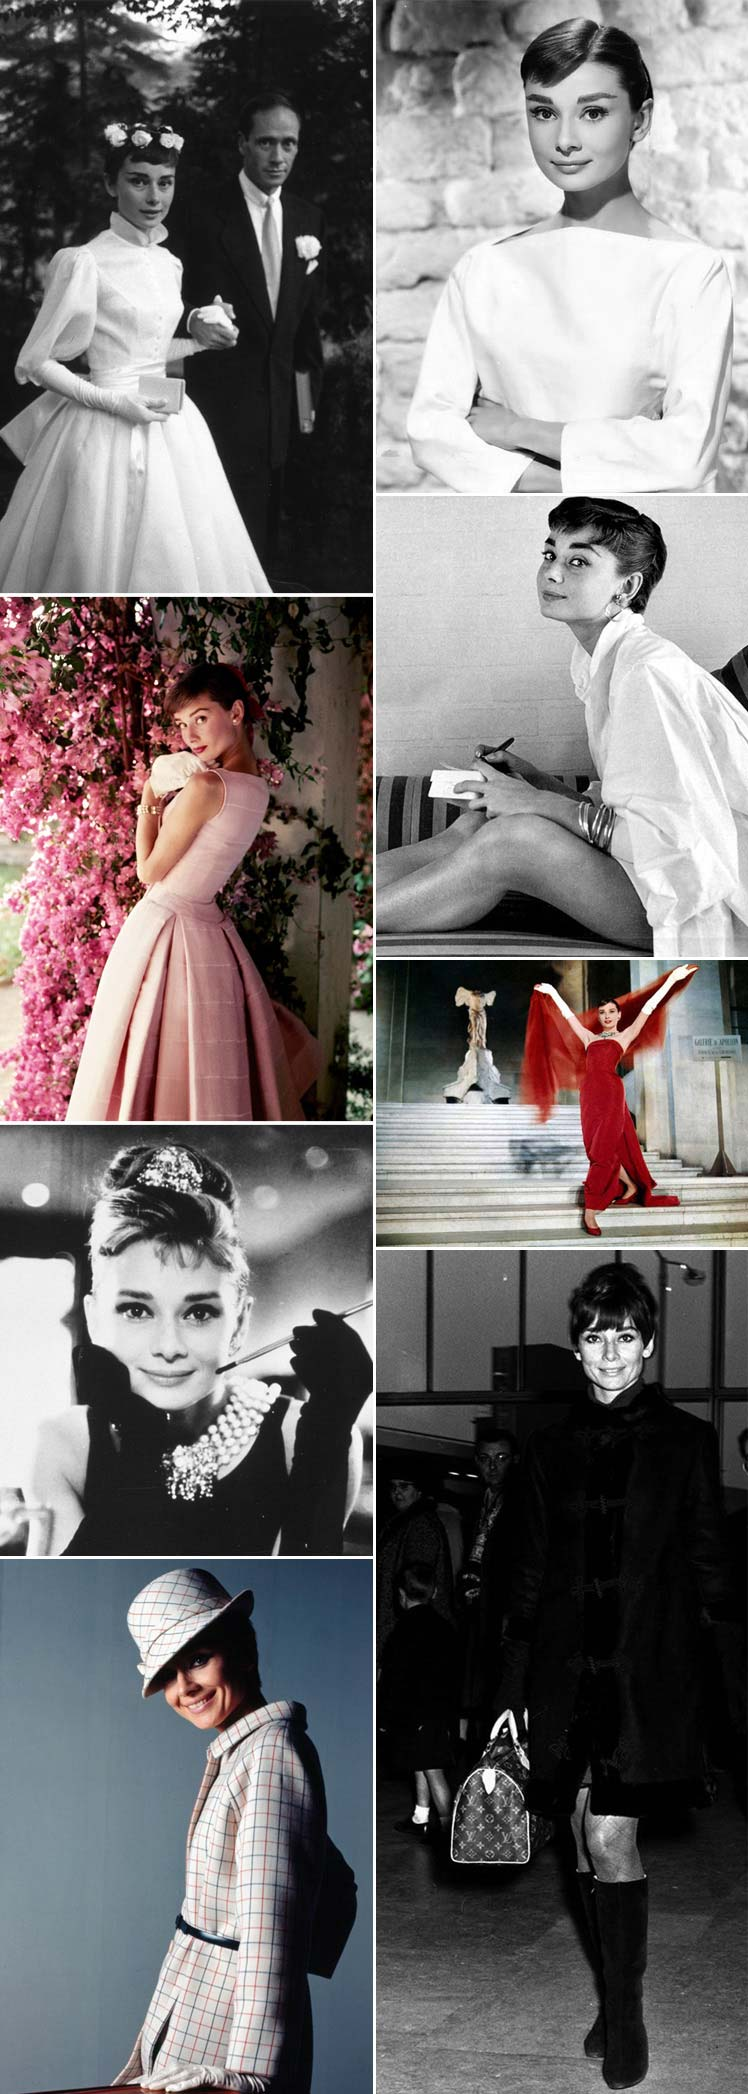 Celebrating Audrey Hepburn's style